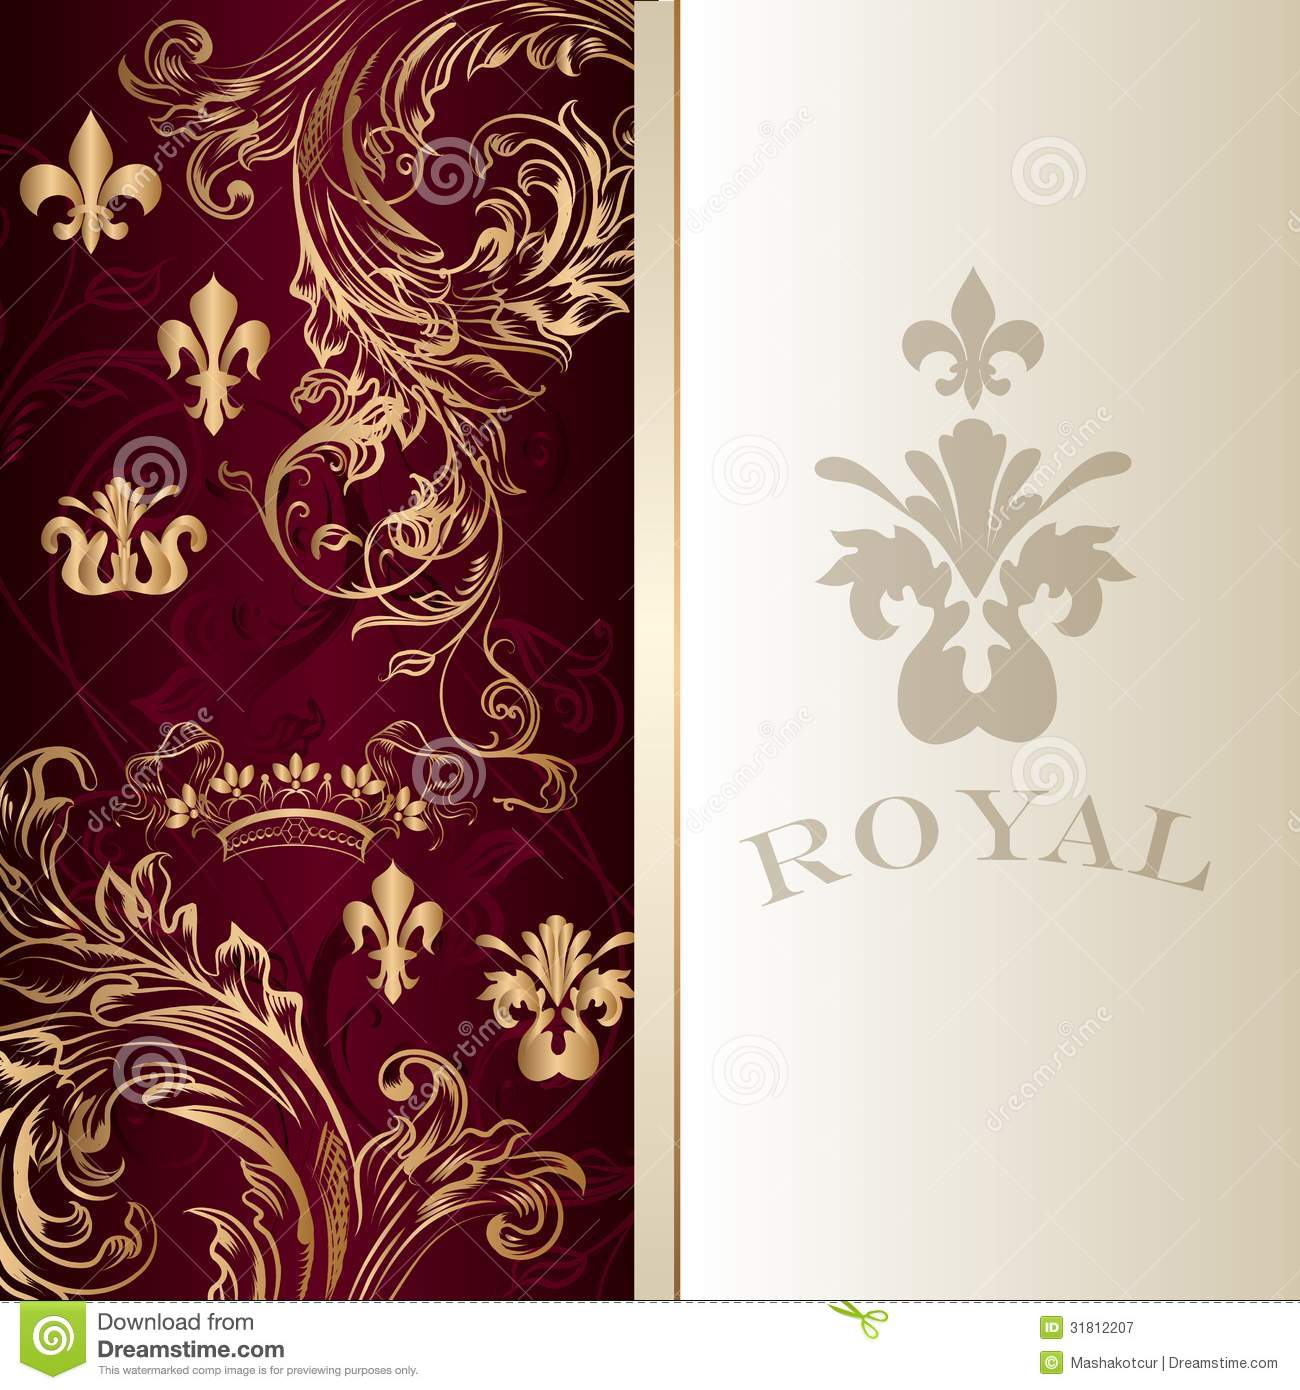 Elegant invitation card in royal luxury style stock vector elegant invitation card in royal luxury style stopboris Image collections